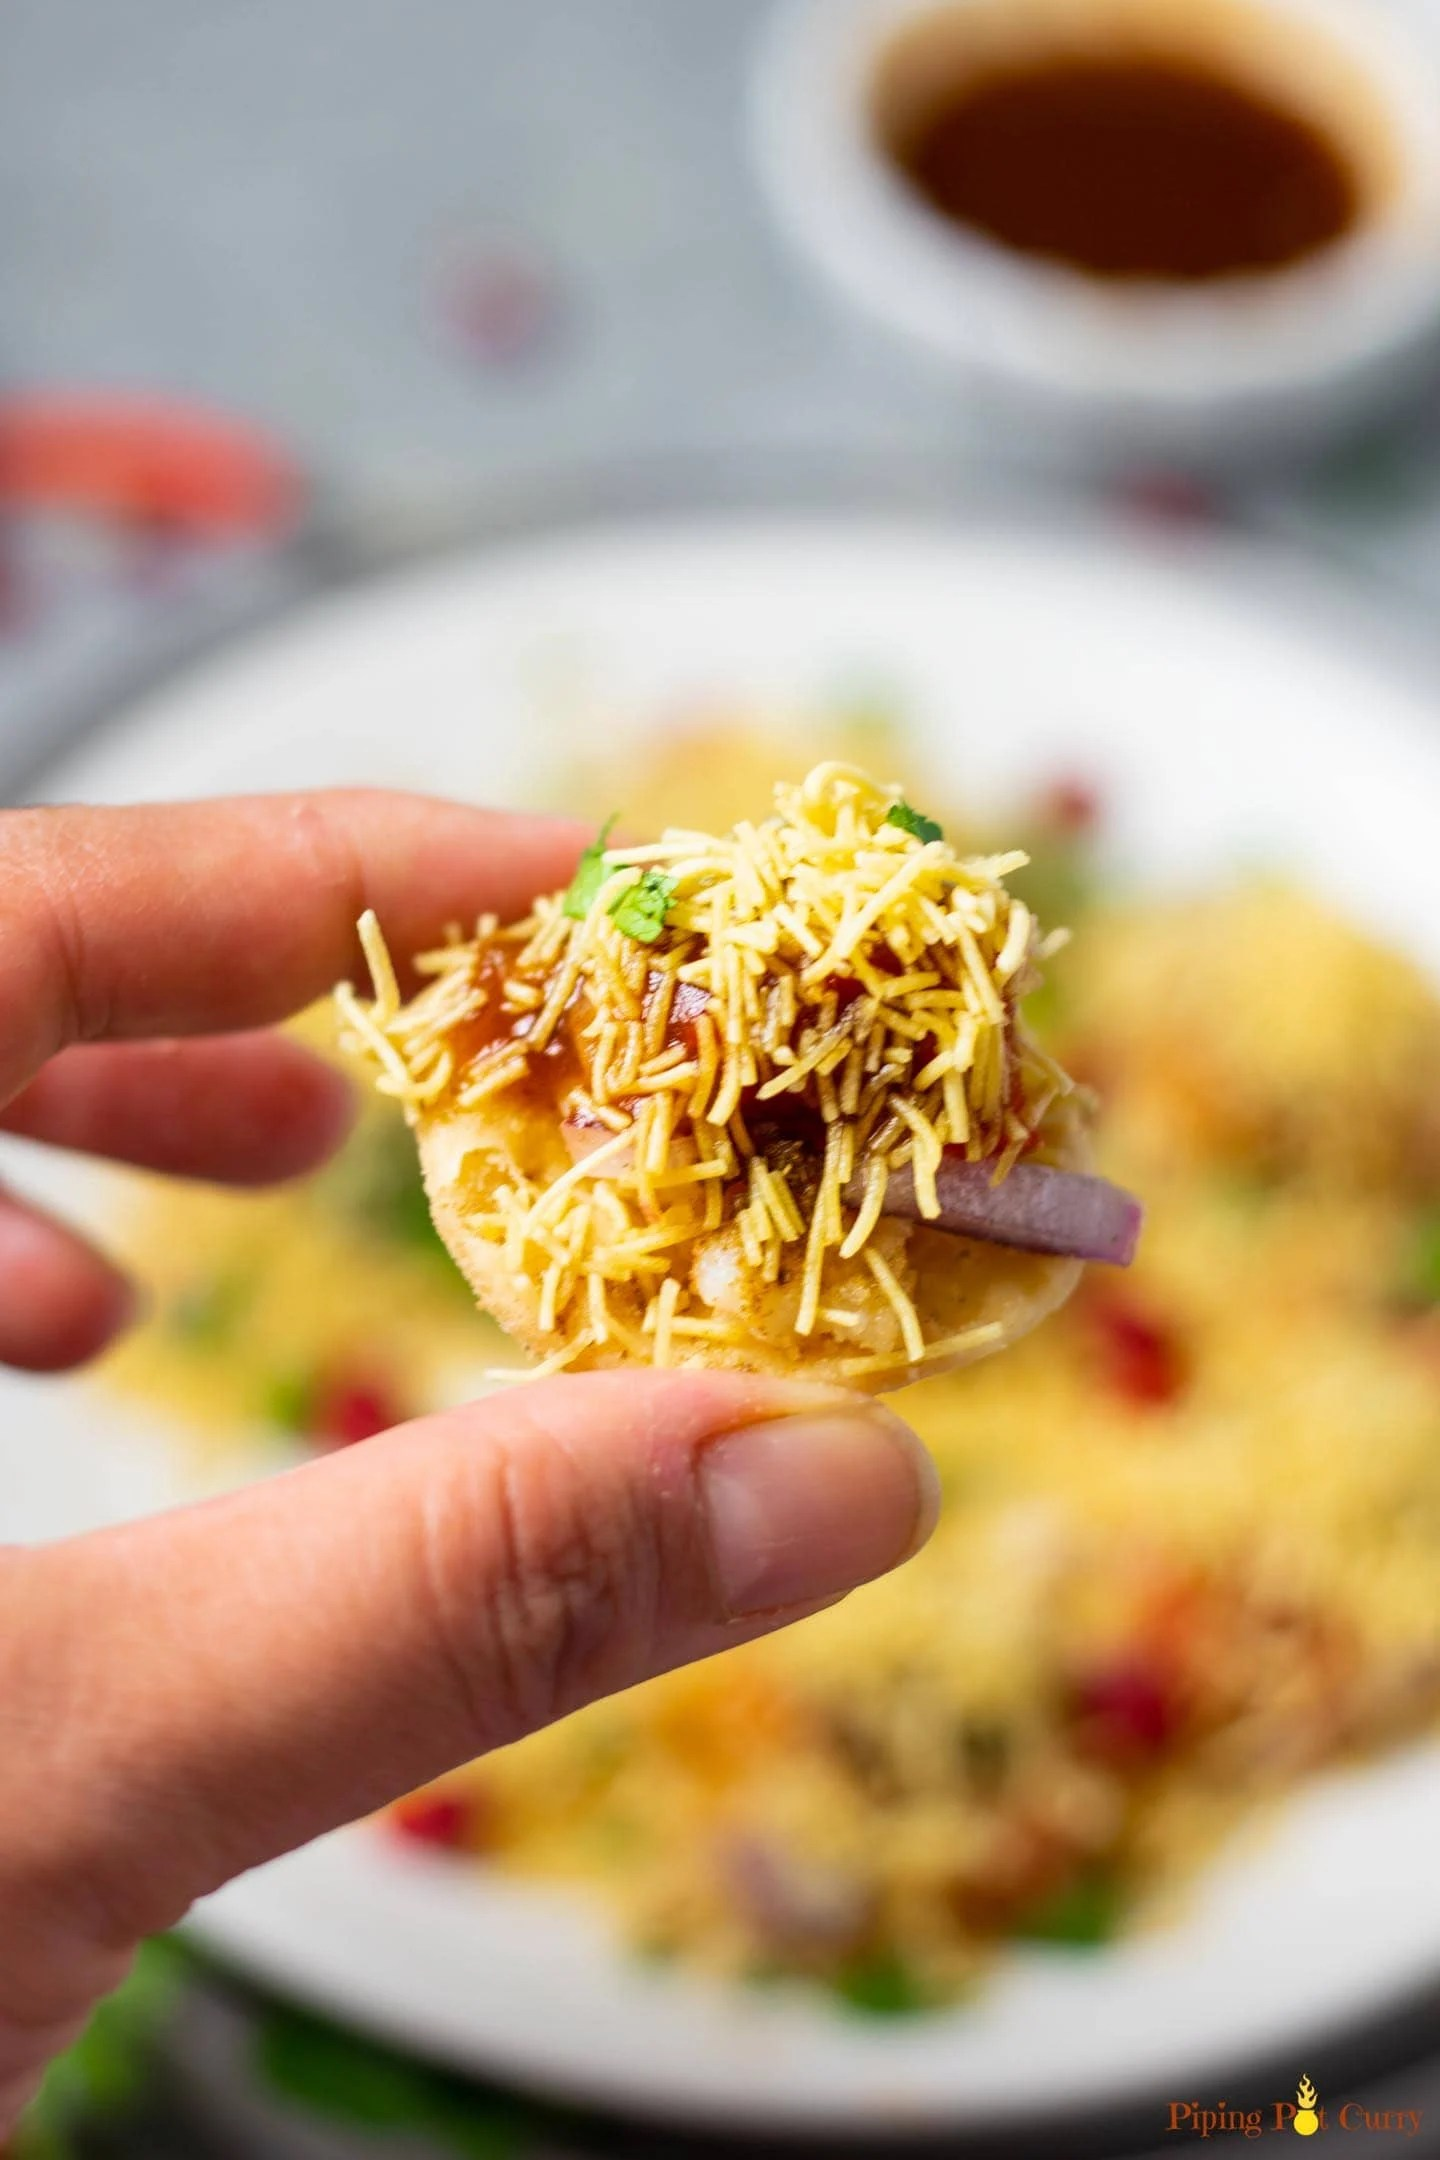 Closeup of a sev puri with a whole filled plate in the background